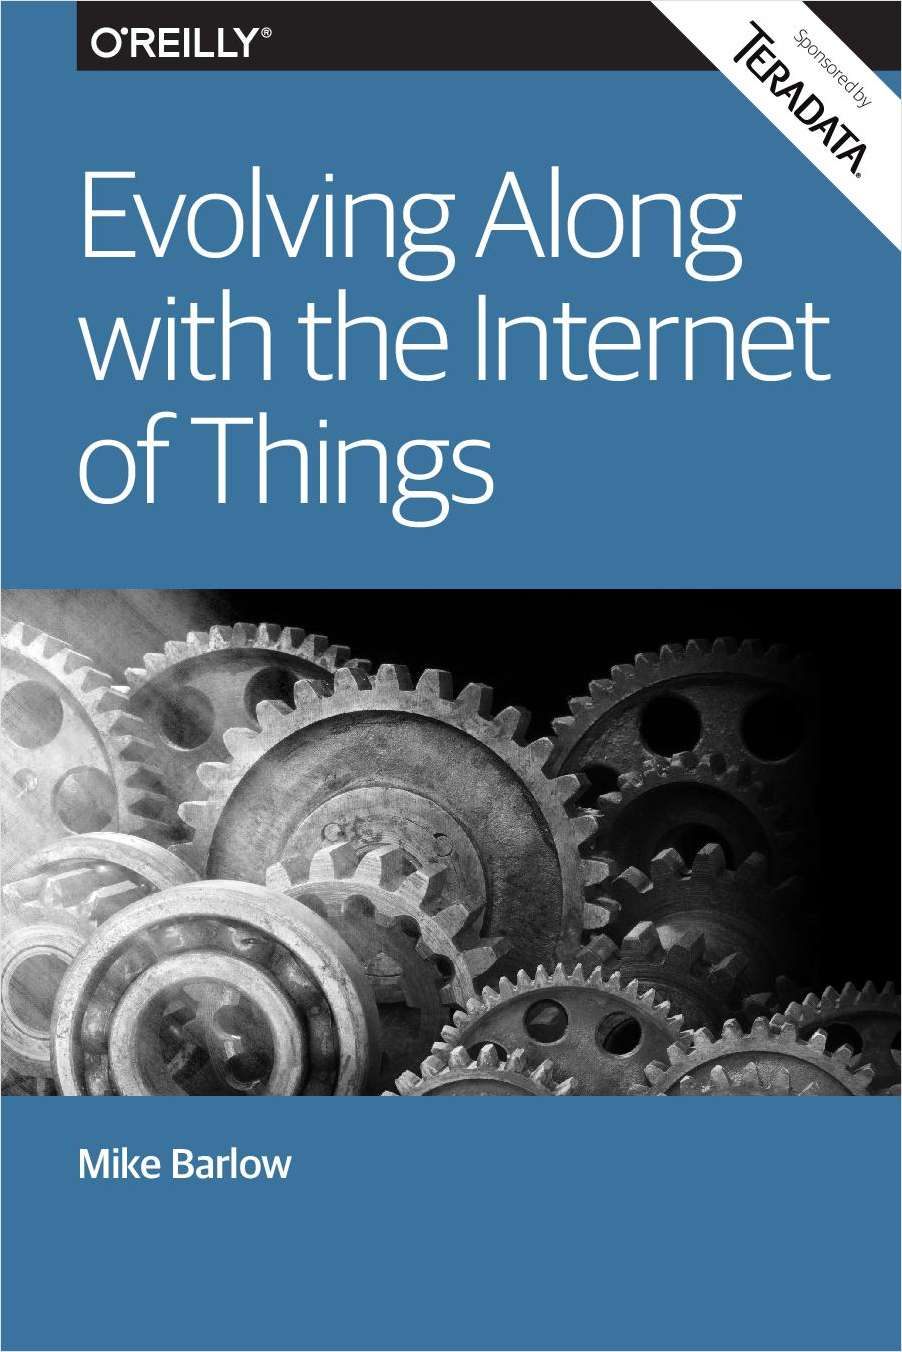 Evolving Along with the Internet of Things